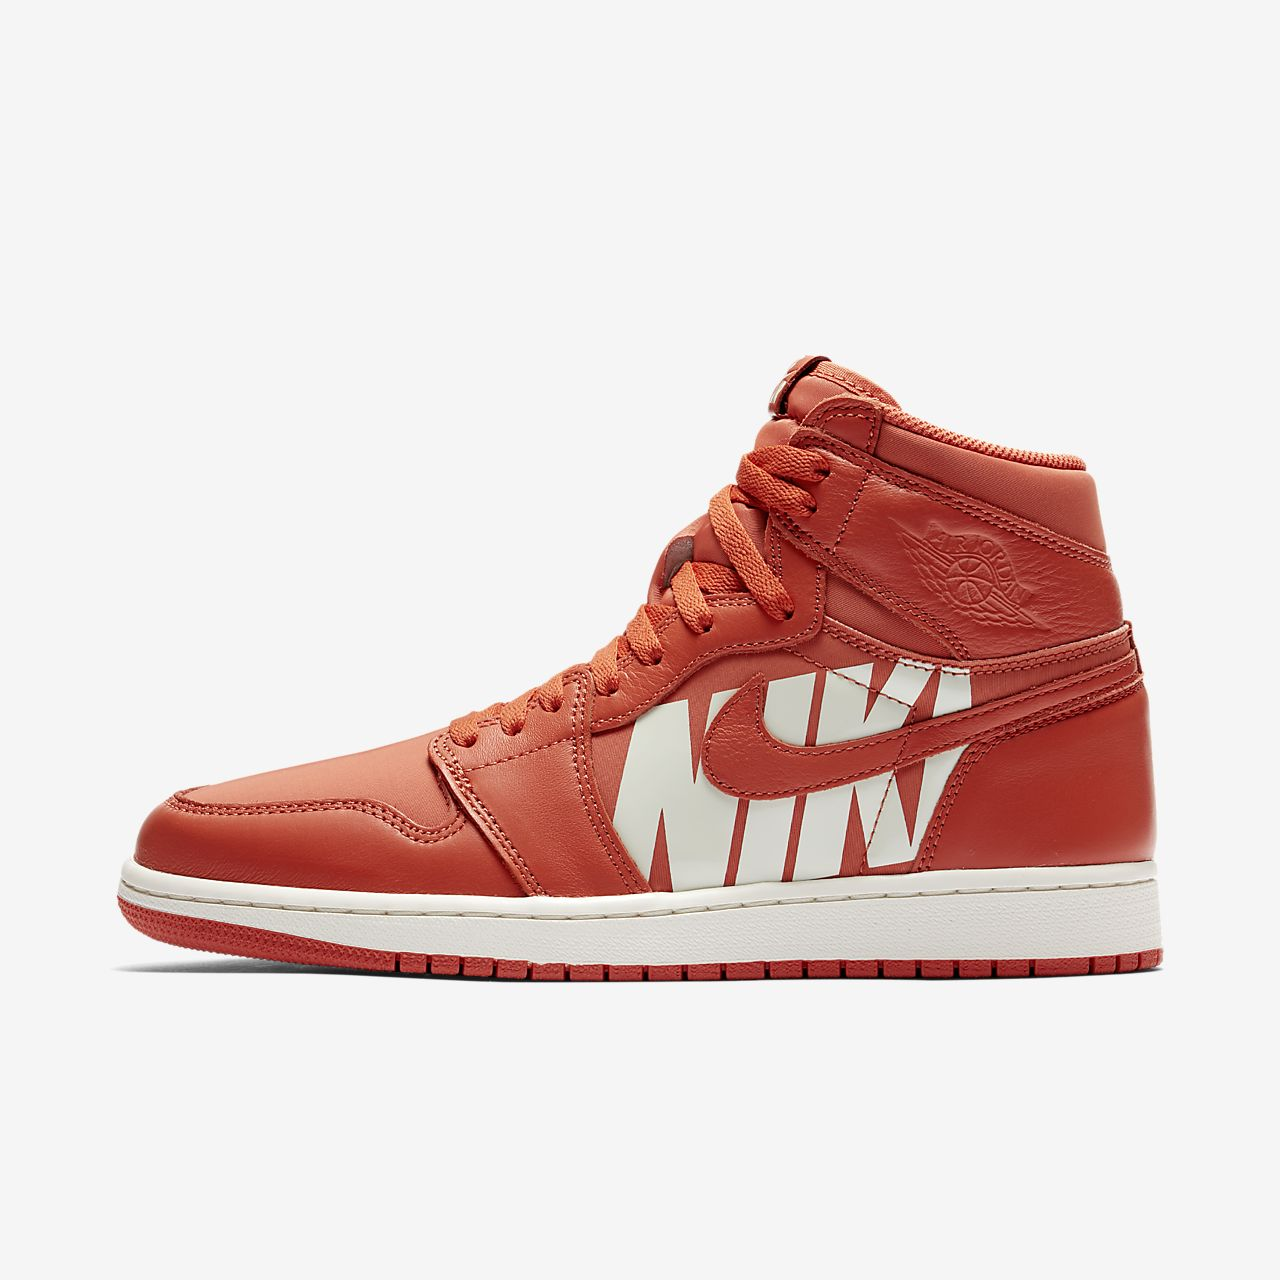 59300856ed03b5 Air Jordan 1 Retro High OG Shoe. Nike.com ZA